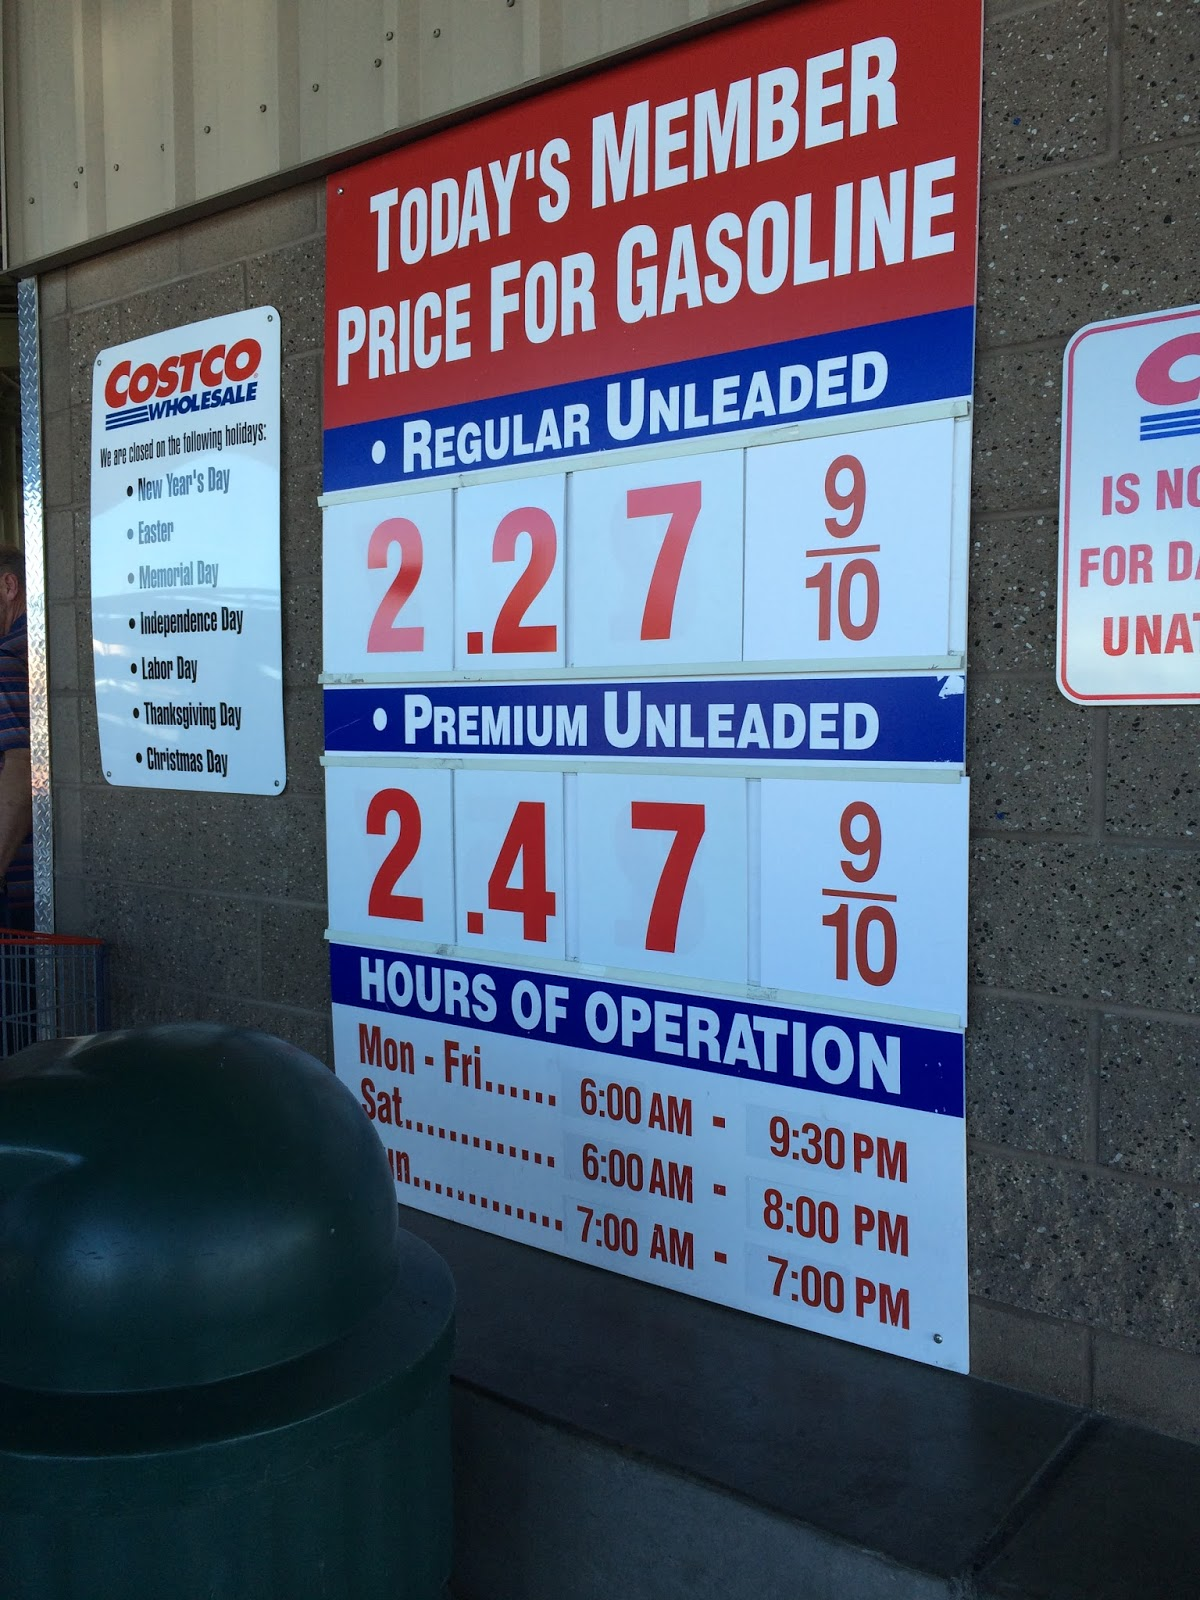 Current Costco Gas Prices Jan 31 2015 Redwood City